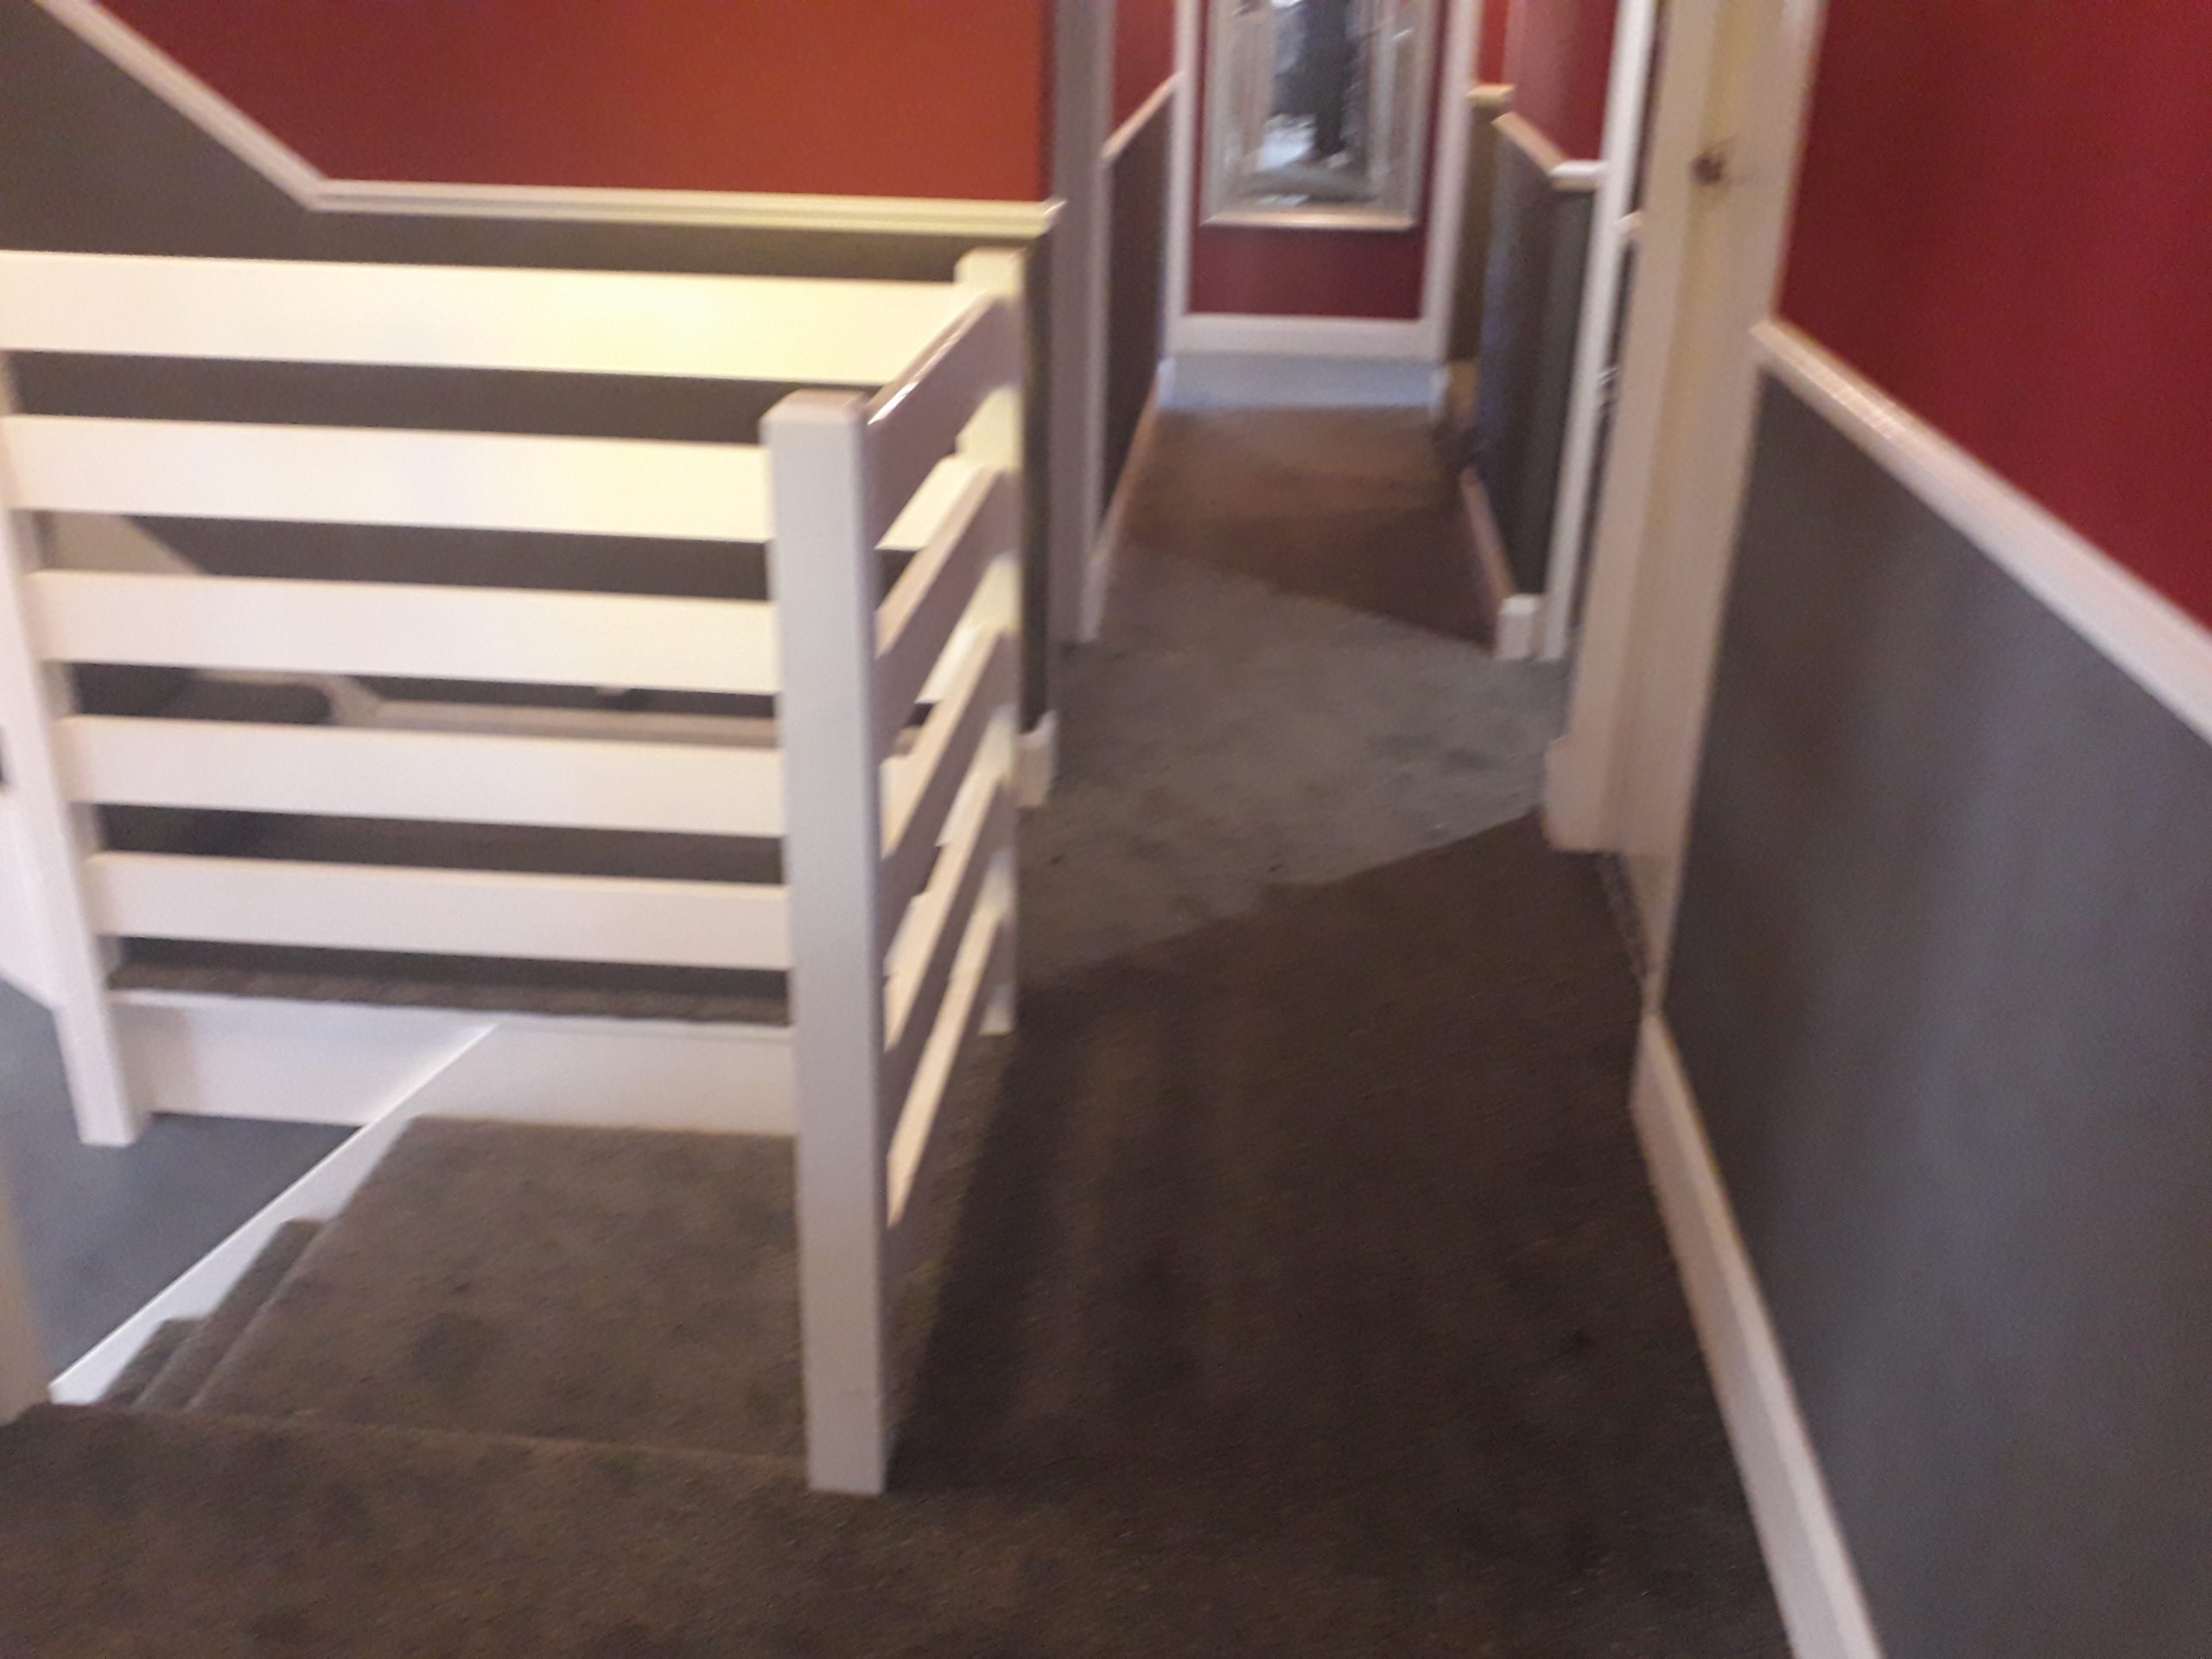 Fiddly staircase carpet fitted in Callington. Very happy with the finished result.